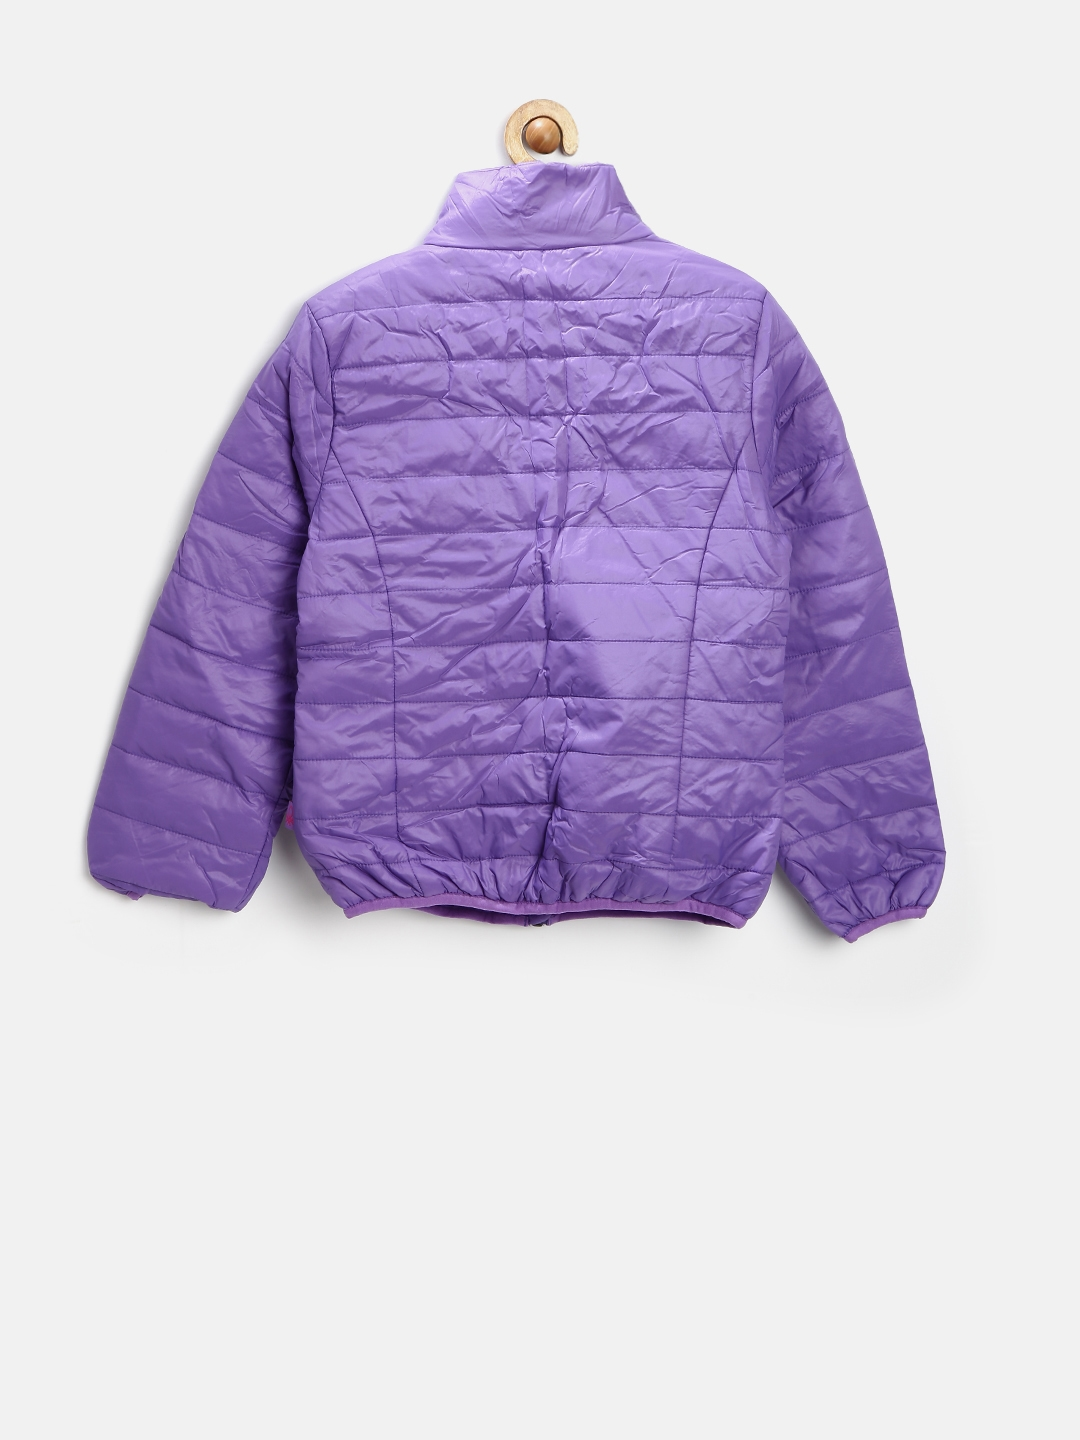 Buy United Colors Of Benetton Girls Purple Jacket - Jackets for ... 640183fadeb8